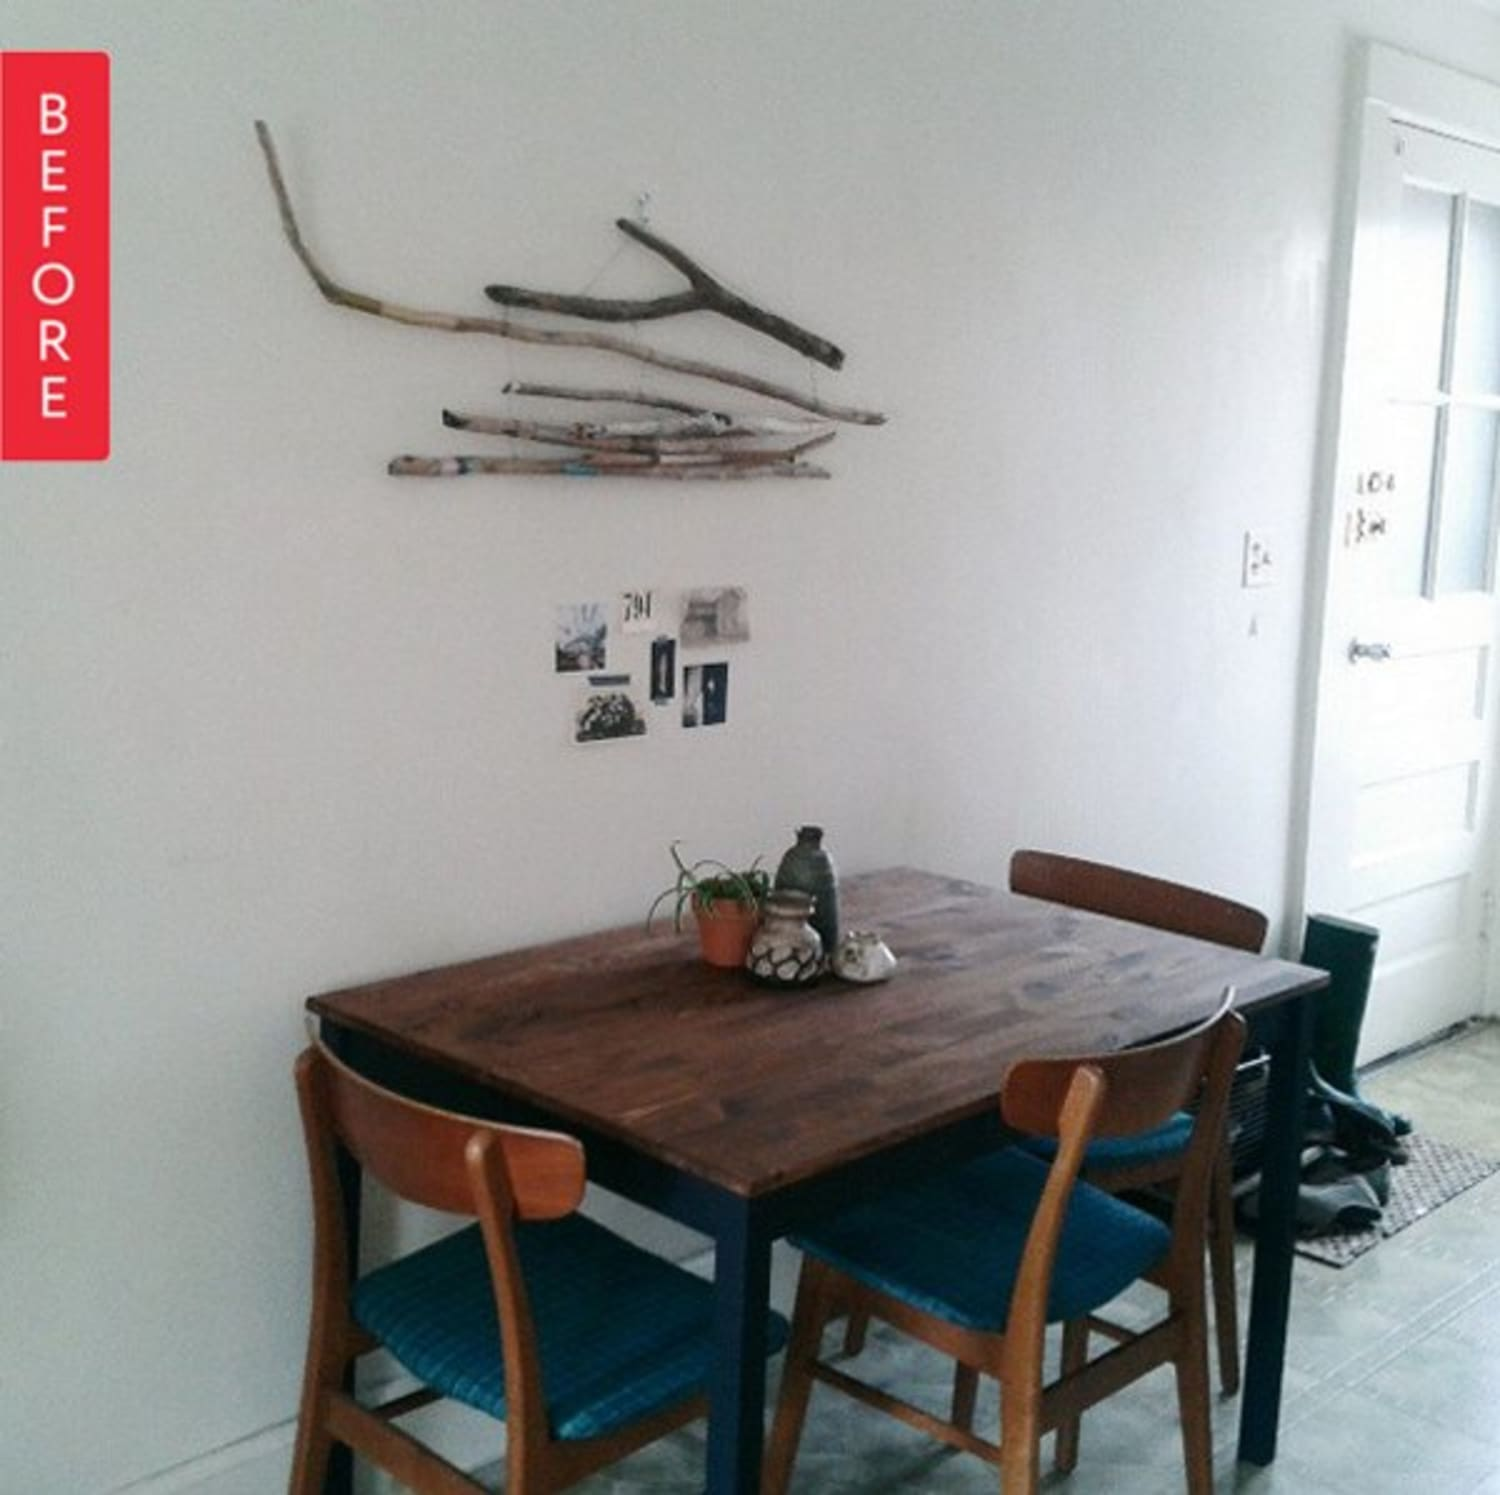 Kitchen Flooring Apartment Therapy: Before & After: A Quick Rental Floor Fix, For Under $200